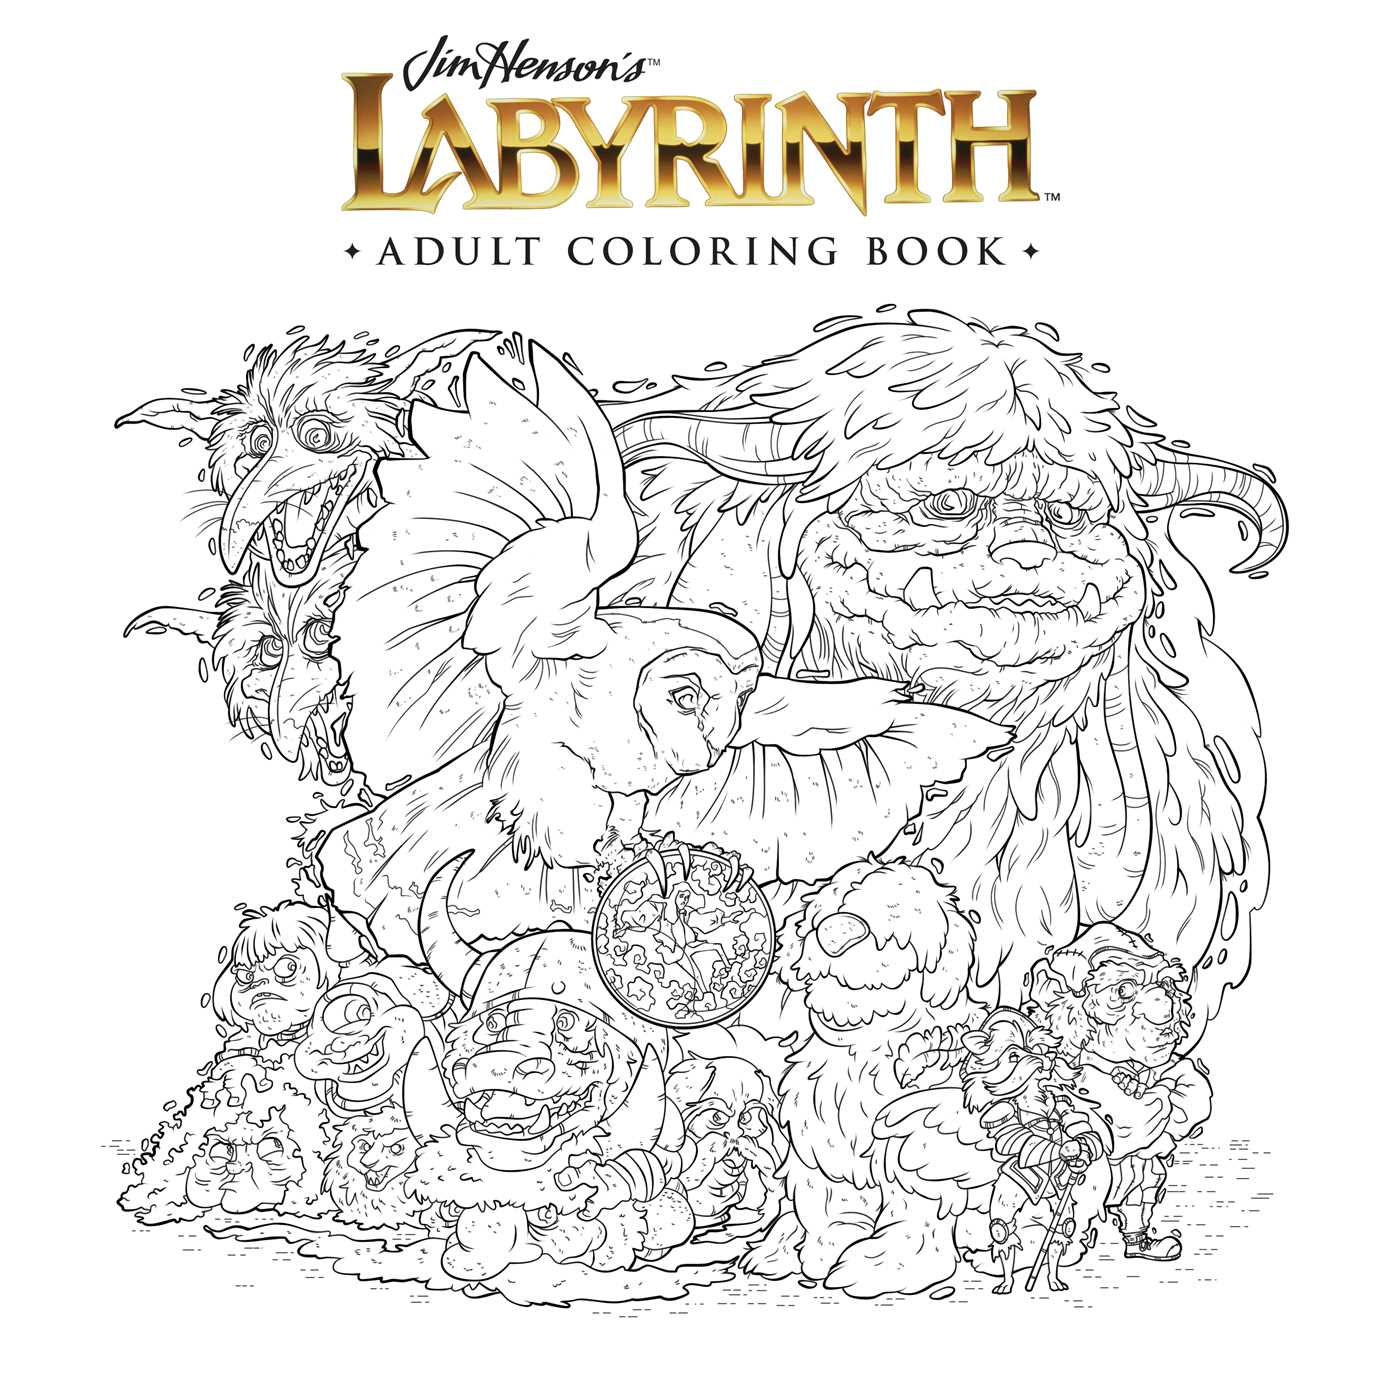 Publishers for adult coloring books - Jim Hensons Labyrinth Adult Coloring Book 9781684151110 Hr